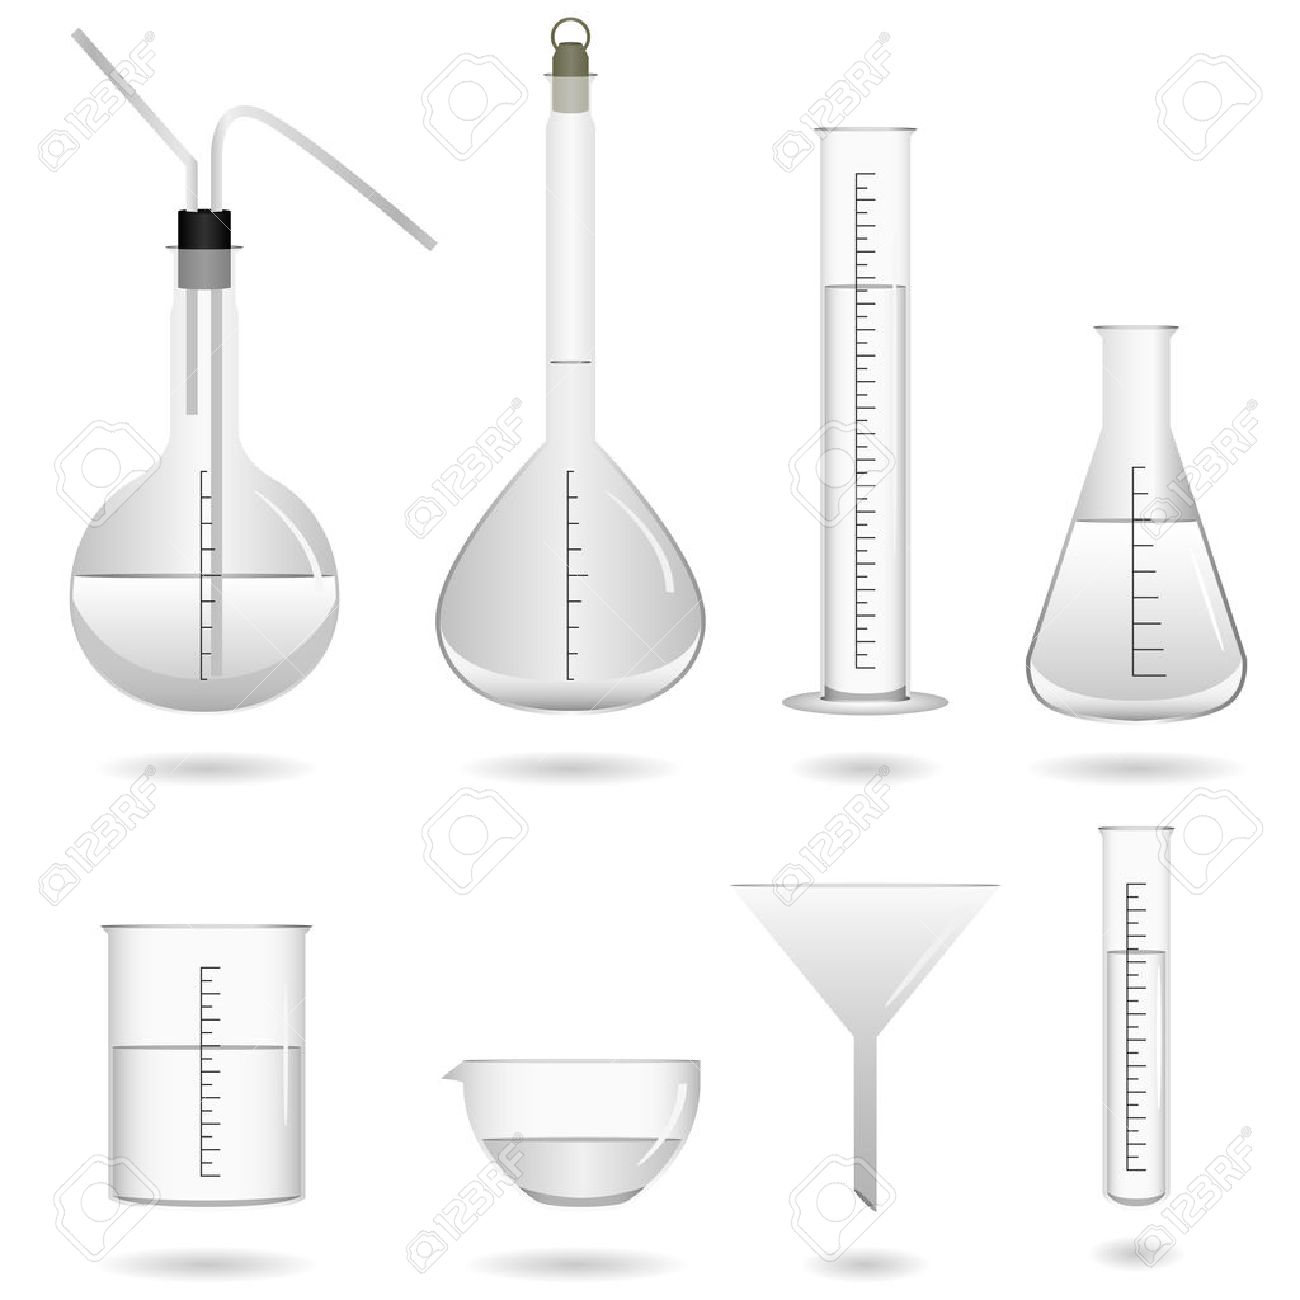 Chemical Science Tools Vector Stock Vector - 7113336